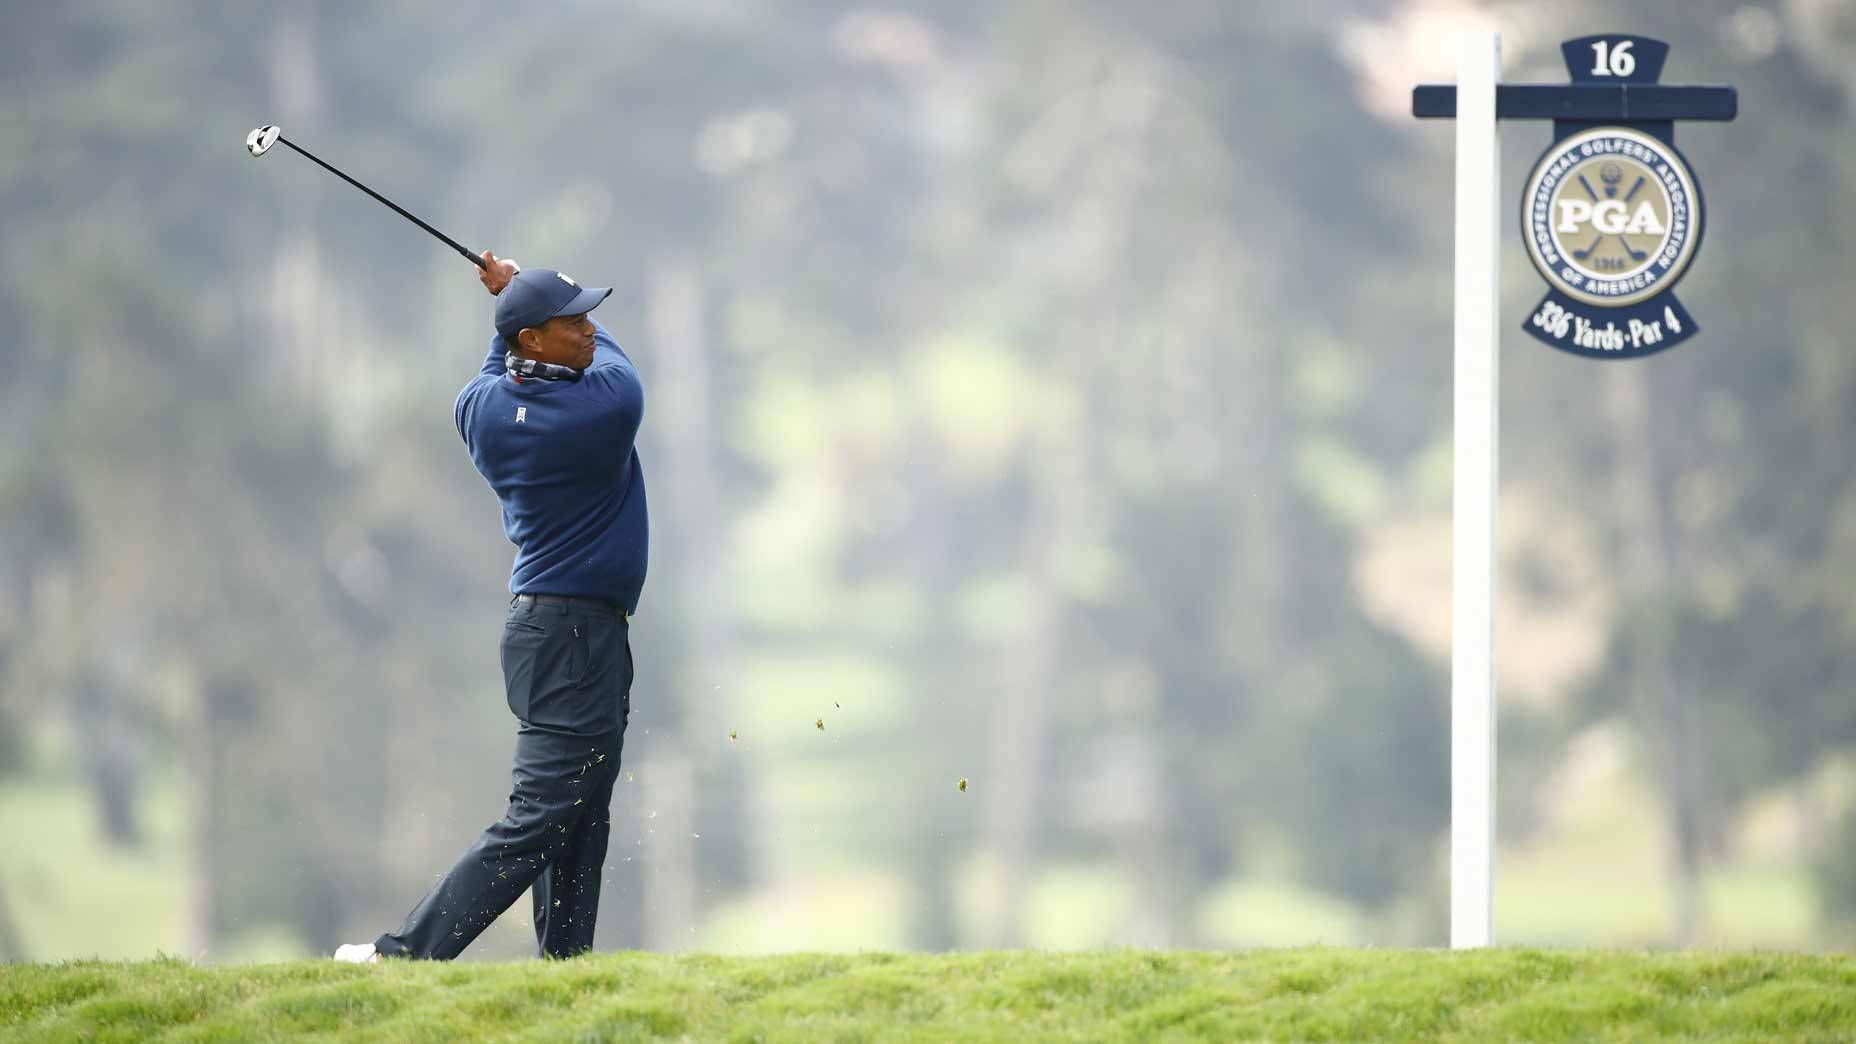 Tiger Woods hits shot at PGA Championship